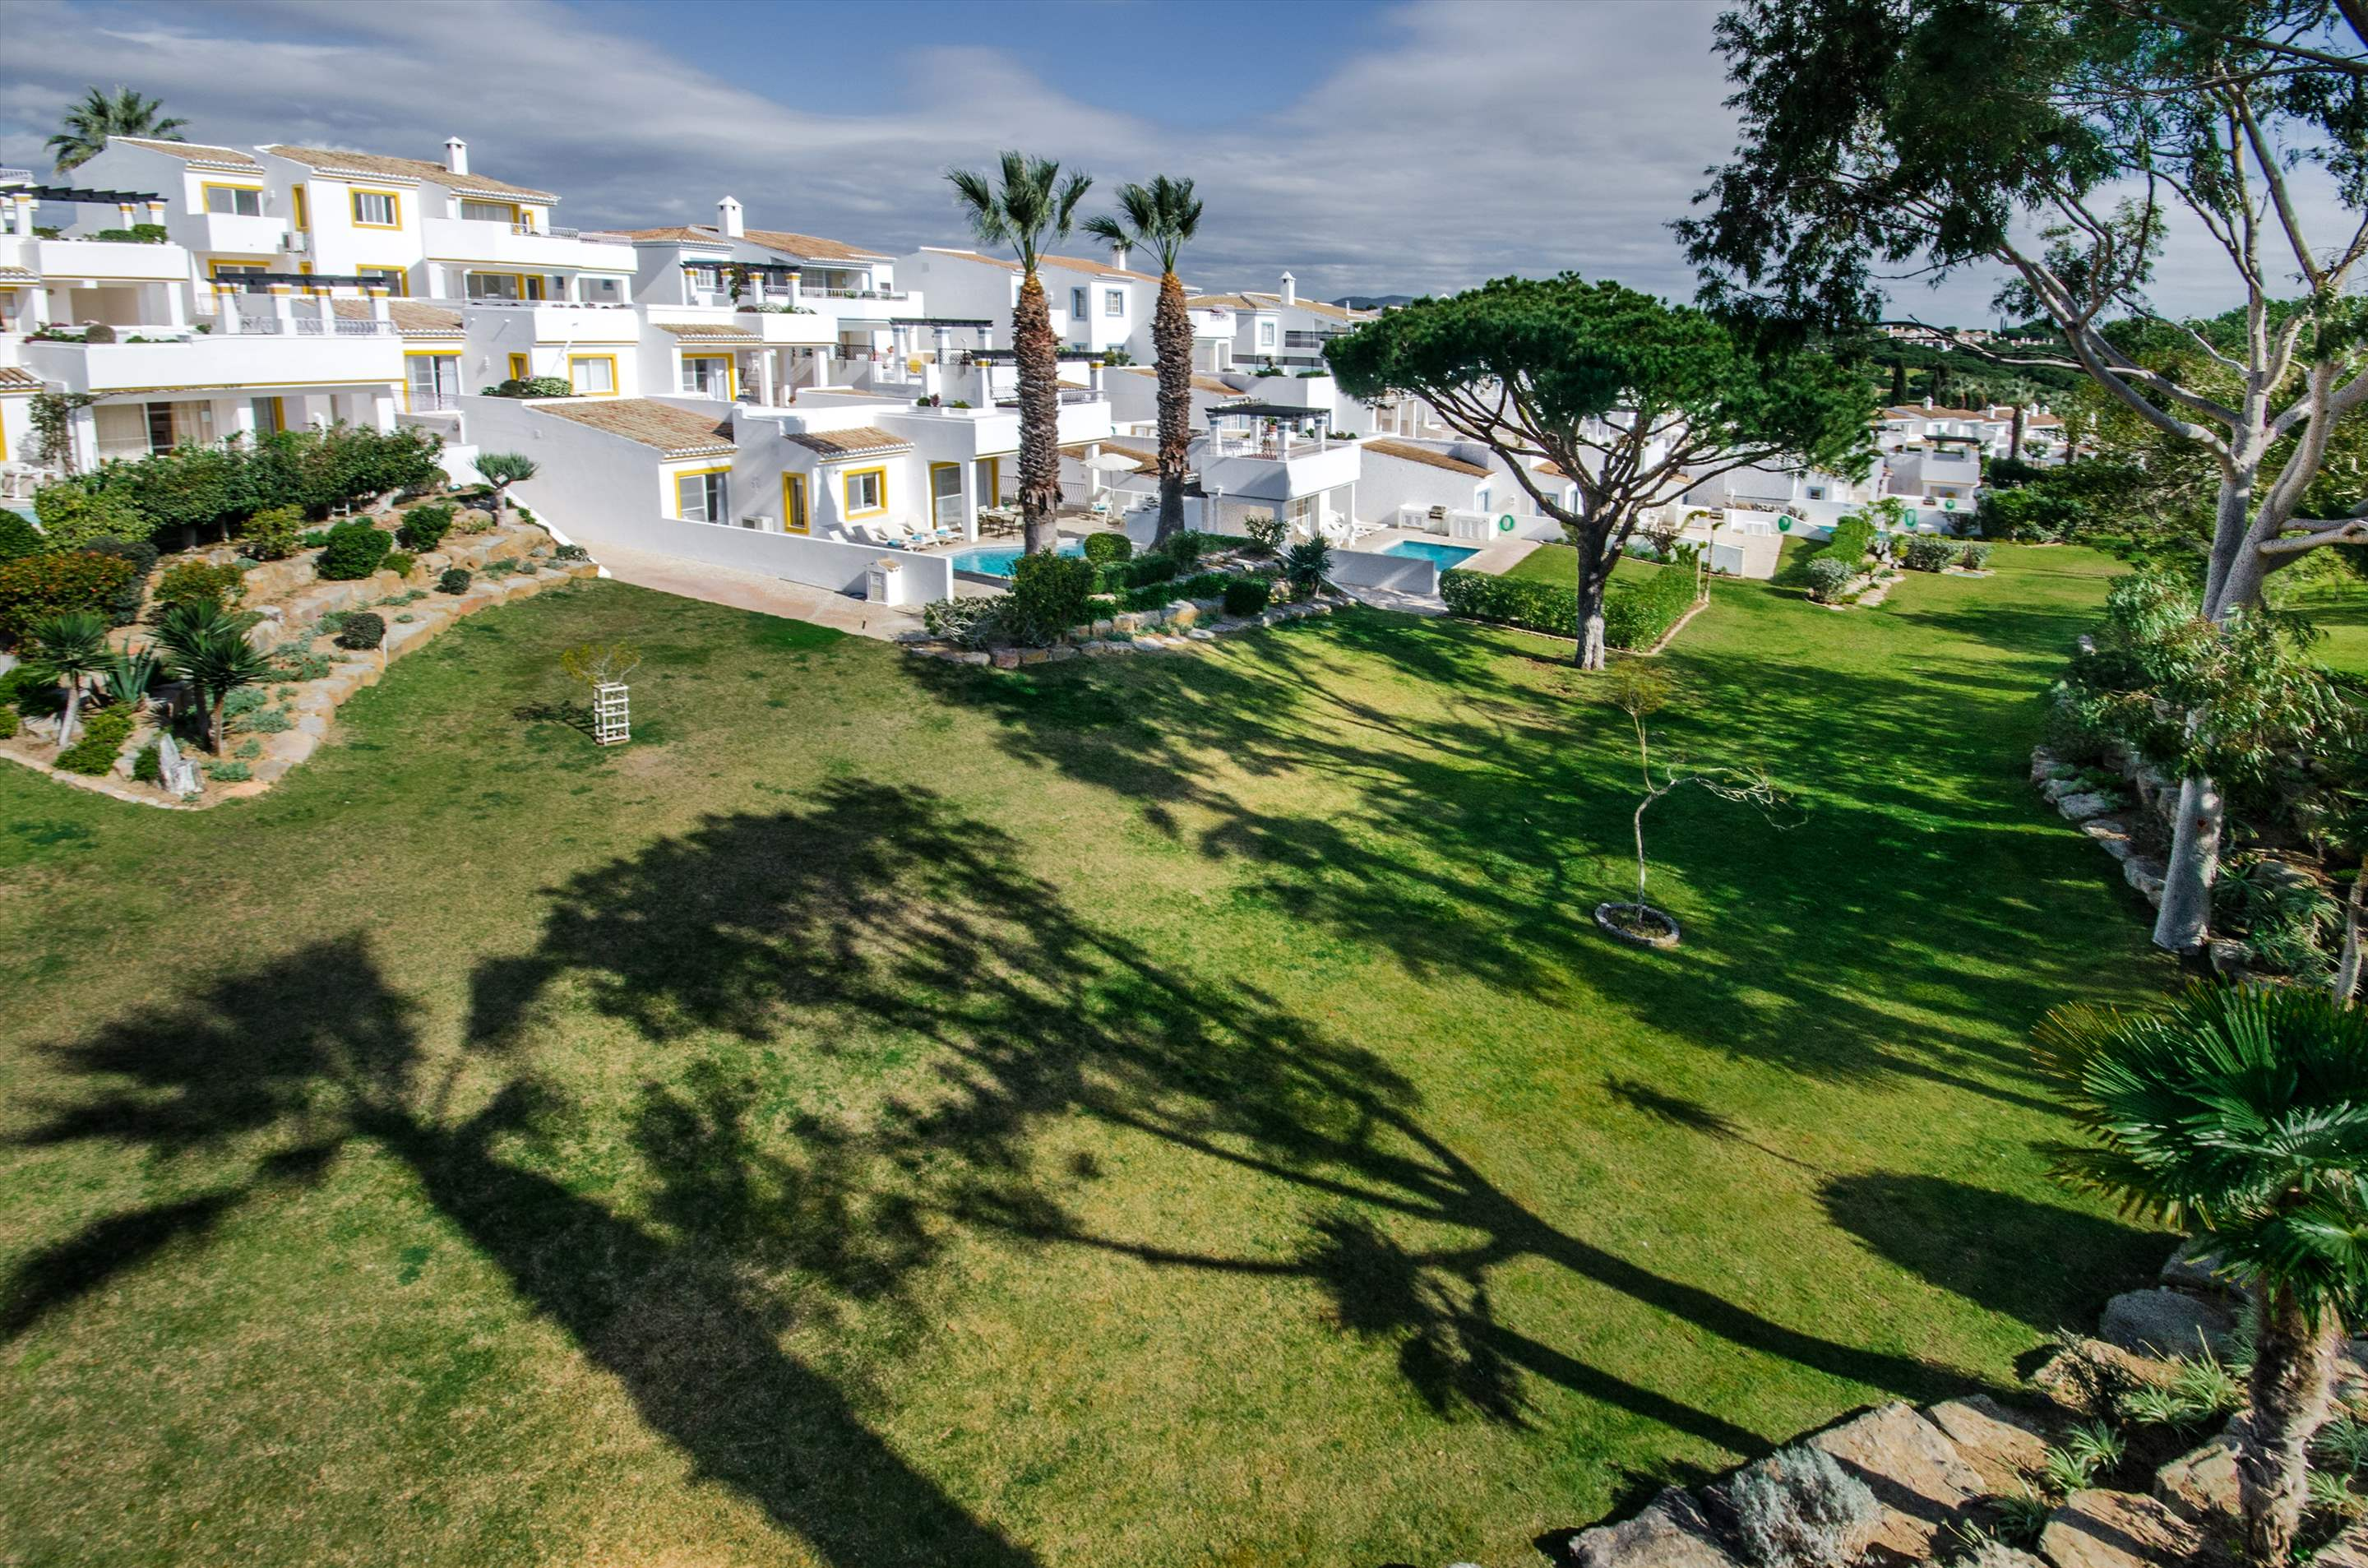 Four Seasons Fairways 3 Bed Hillside Apartment, Thursday Arrival, 3 bedroom villa in Four Seasons Fairways, Algarve Photo #31